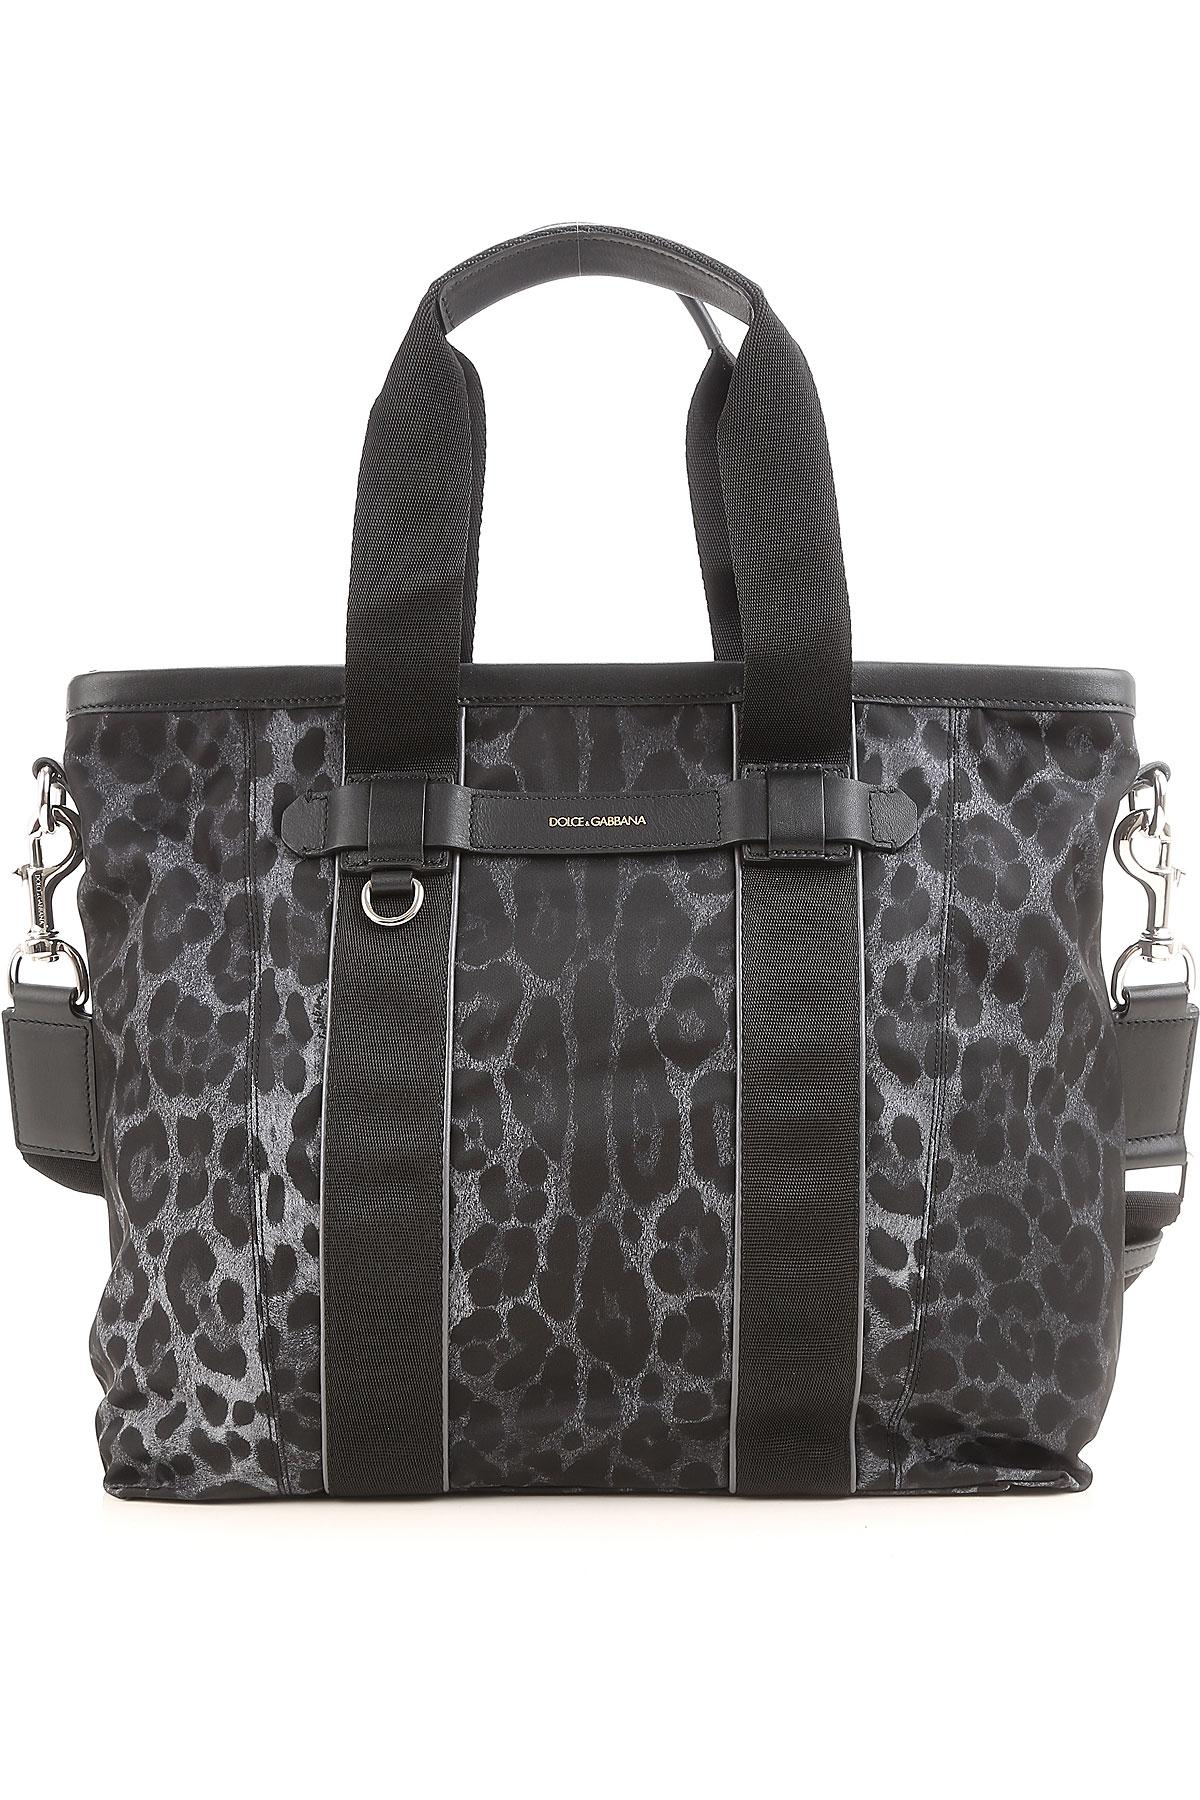 afe0b8fb6c91 Lyst - Dolce   Gabbana Totes On Sale In Outlet in Gray for Men